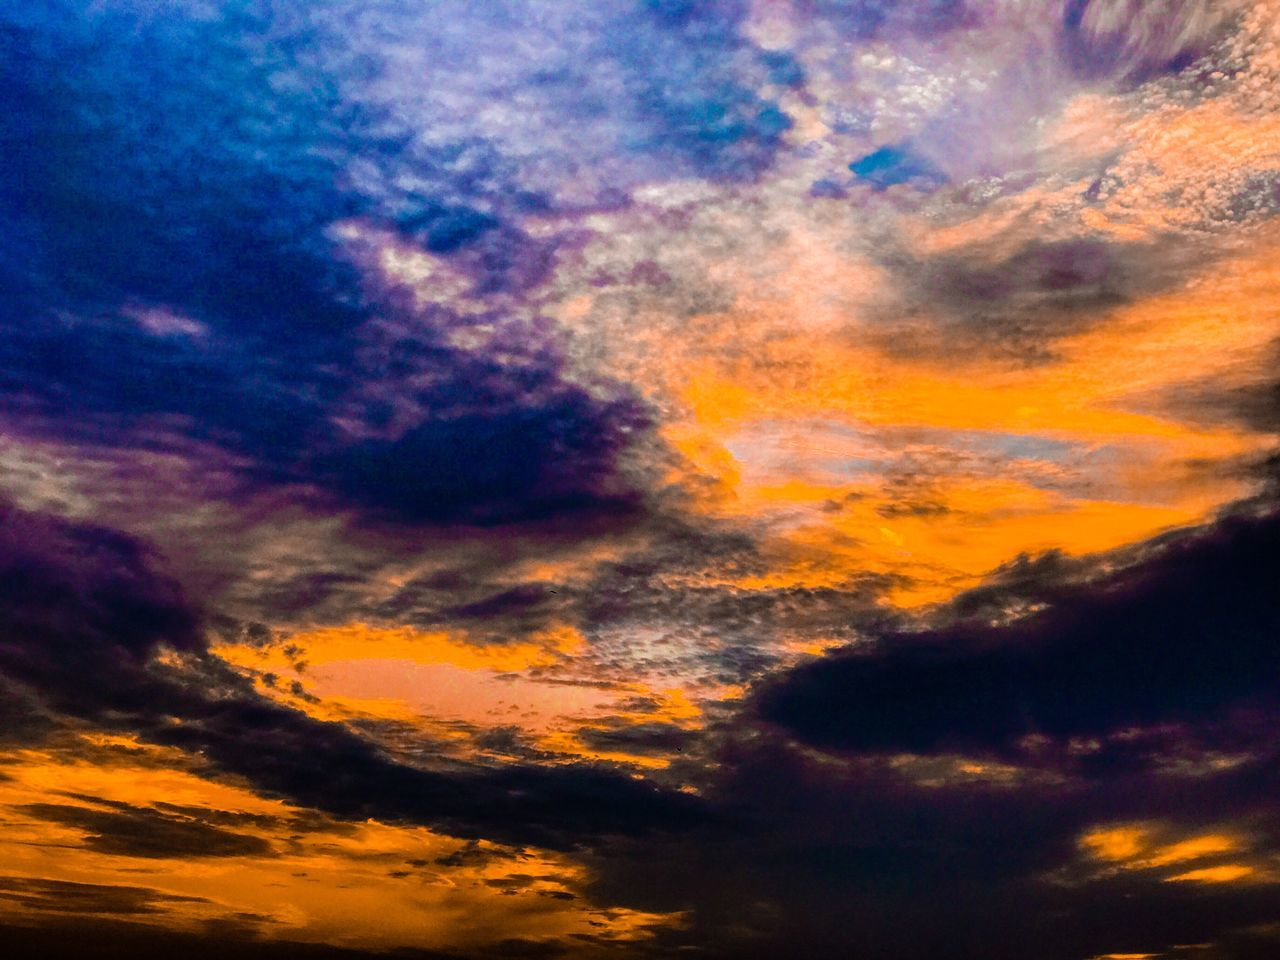 cloud - sky, sky, beauty in nature, scenics, nature, dramatic sky, orange color, tranquil scene, sunset, low angle view, tranquility, idyllic, no people, majestic, cloudscape, sky only, weather, outdoors, environment, abstract, backgrounds, multi colored, storm cloud, day